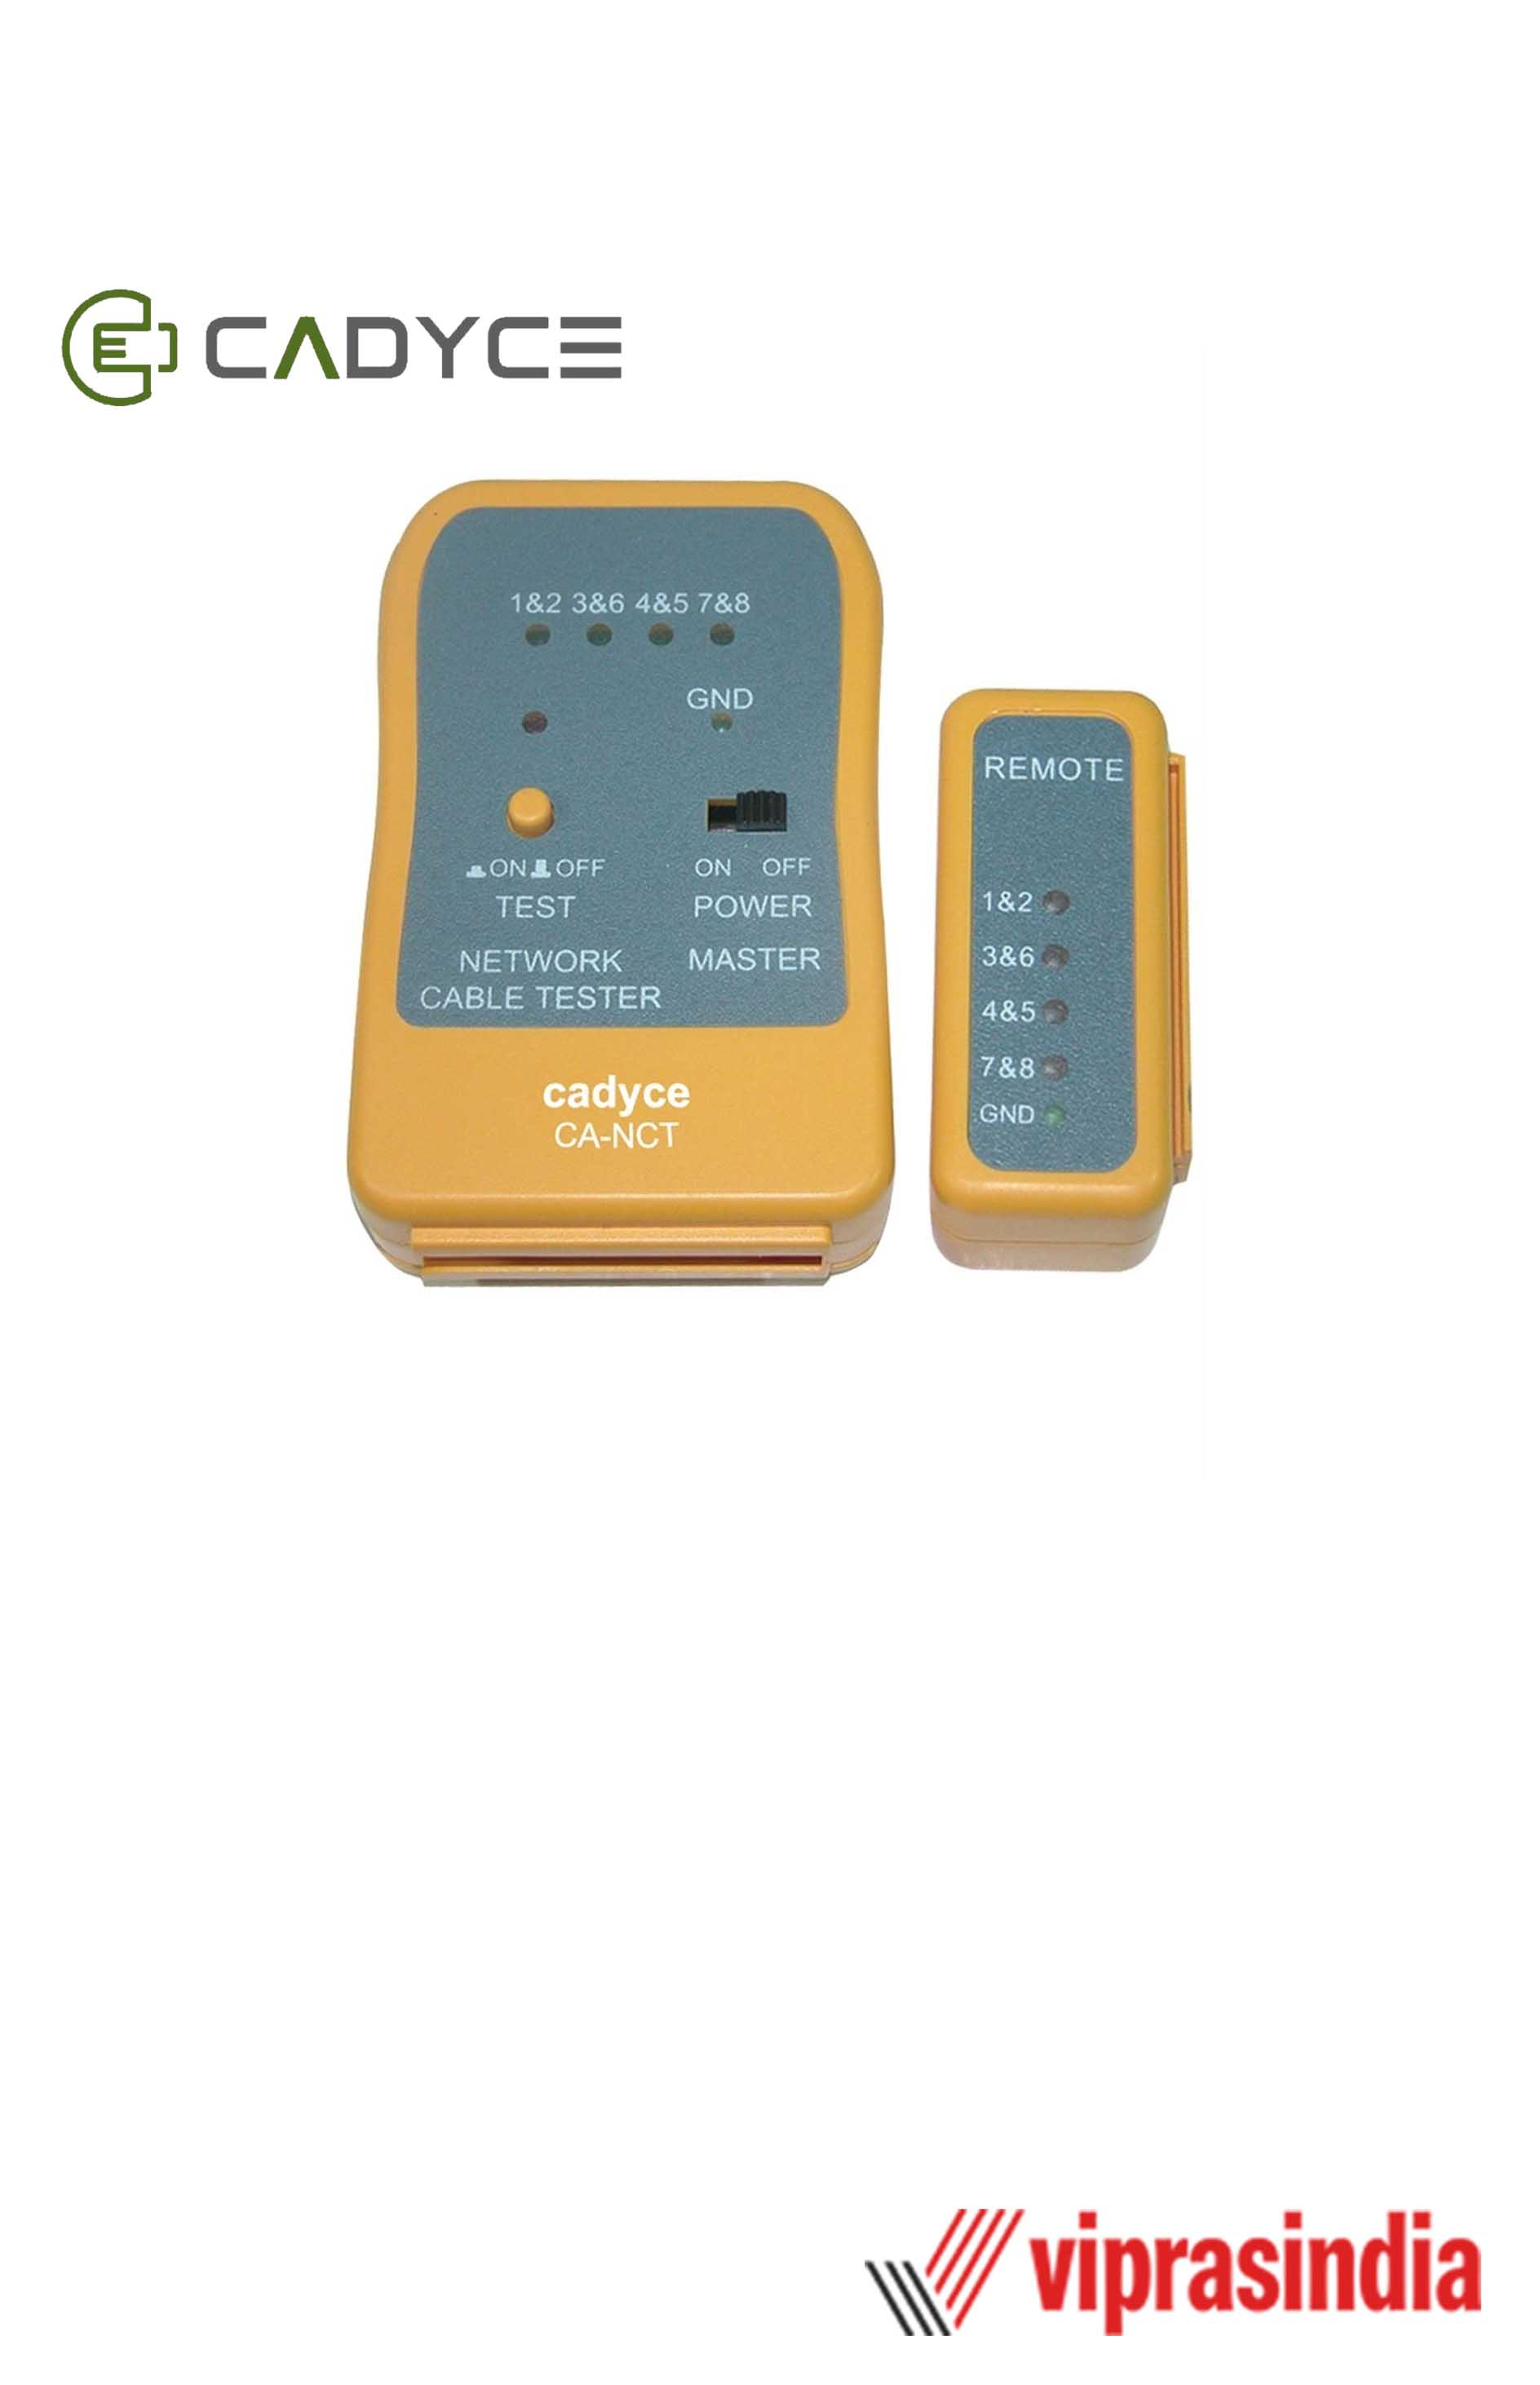 Cadyce Network Cable Tester CA-NCT